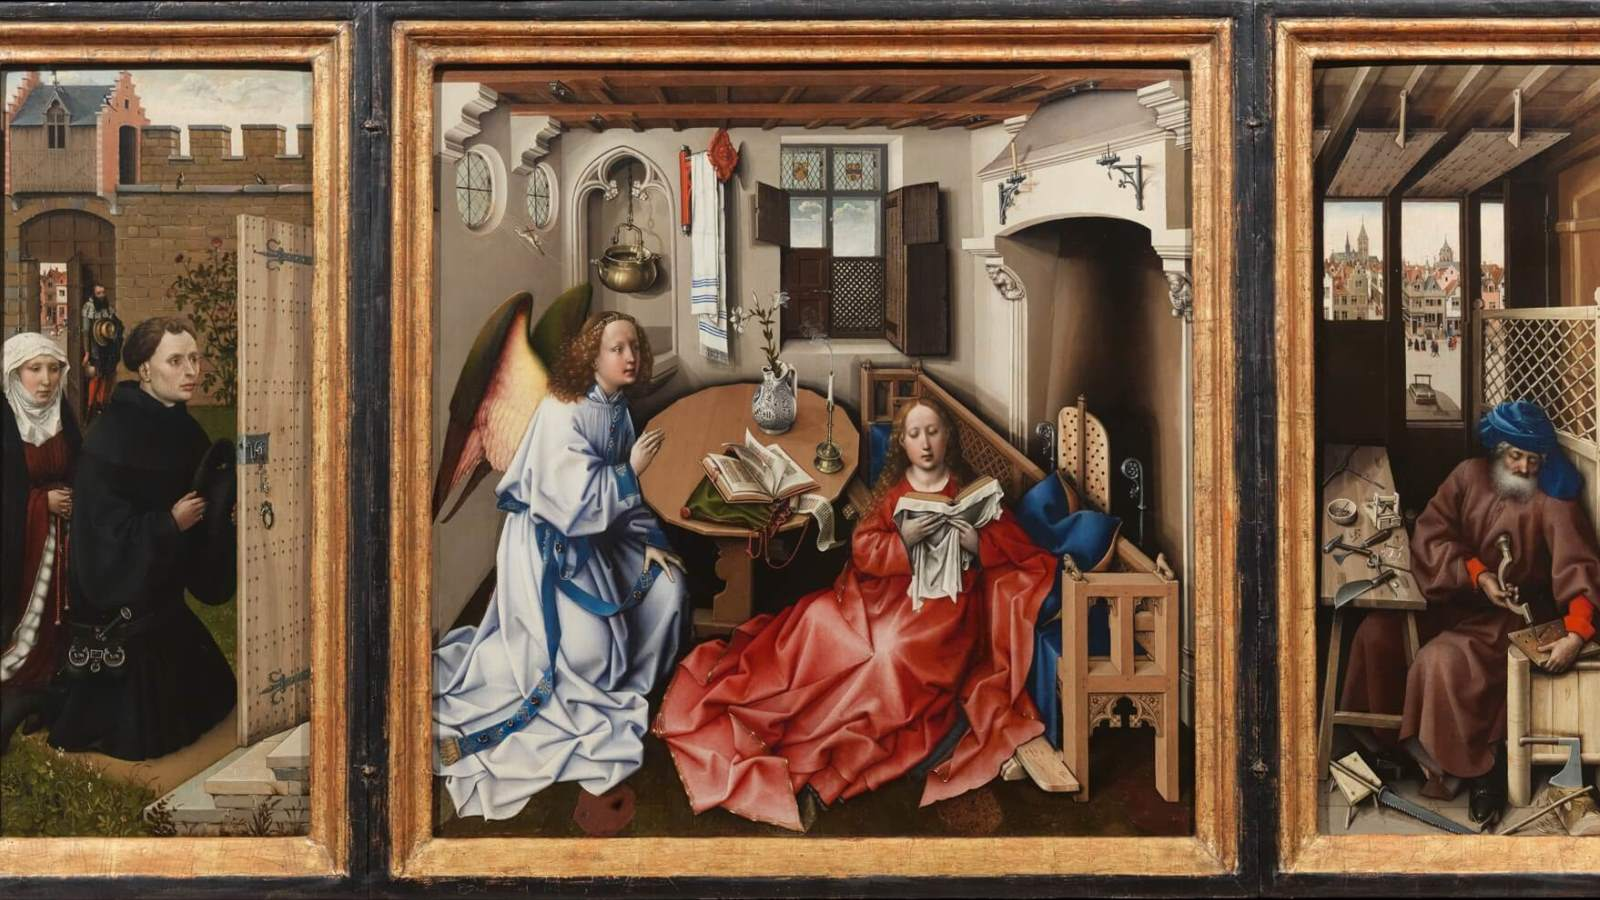 a painting analysis of masaccios holy trinity and campins merode altarpiece Masaccio, holy trinity (article) | khan academy left: masaccio, holy trinity, c 1427, fresco, 667 x 317 cm, santa maria novella, florence right: masaccios holy trinity with the figures labeled masaccio was the first painter in the renaissance to incorporate brunelleschis discovery in his art.